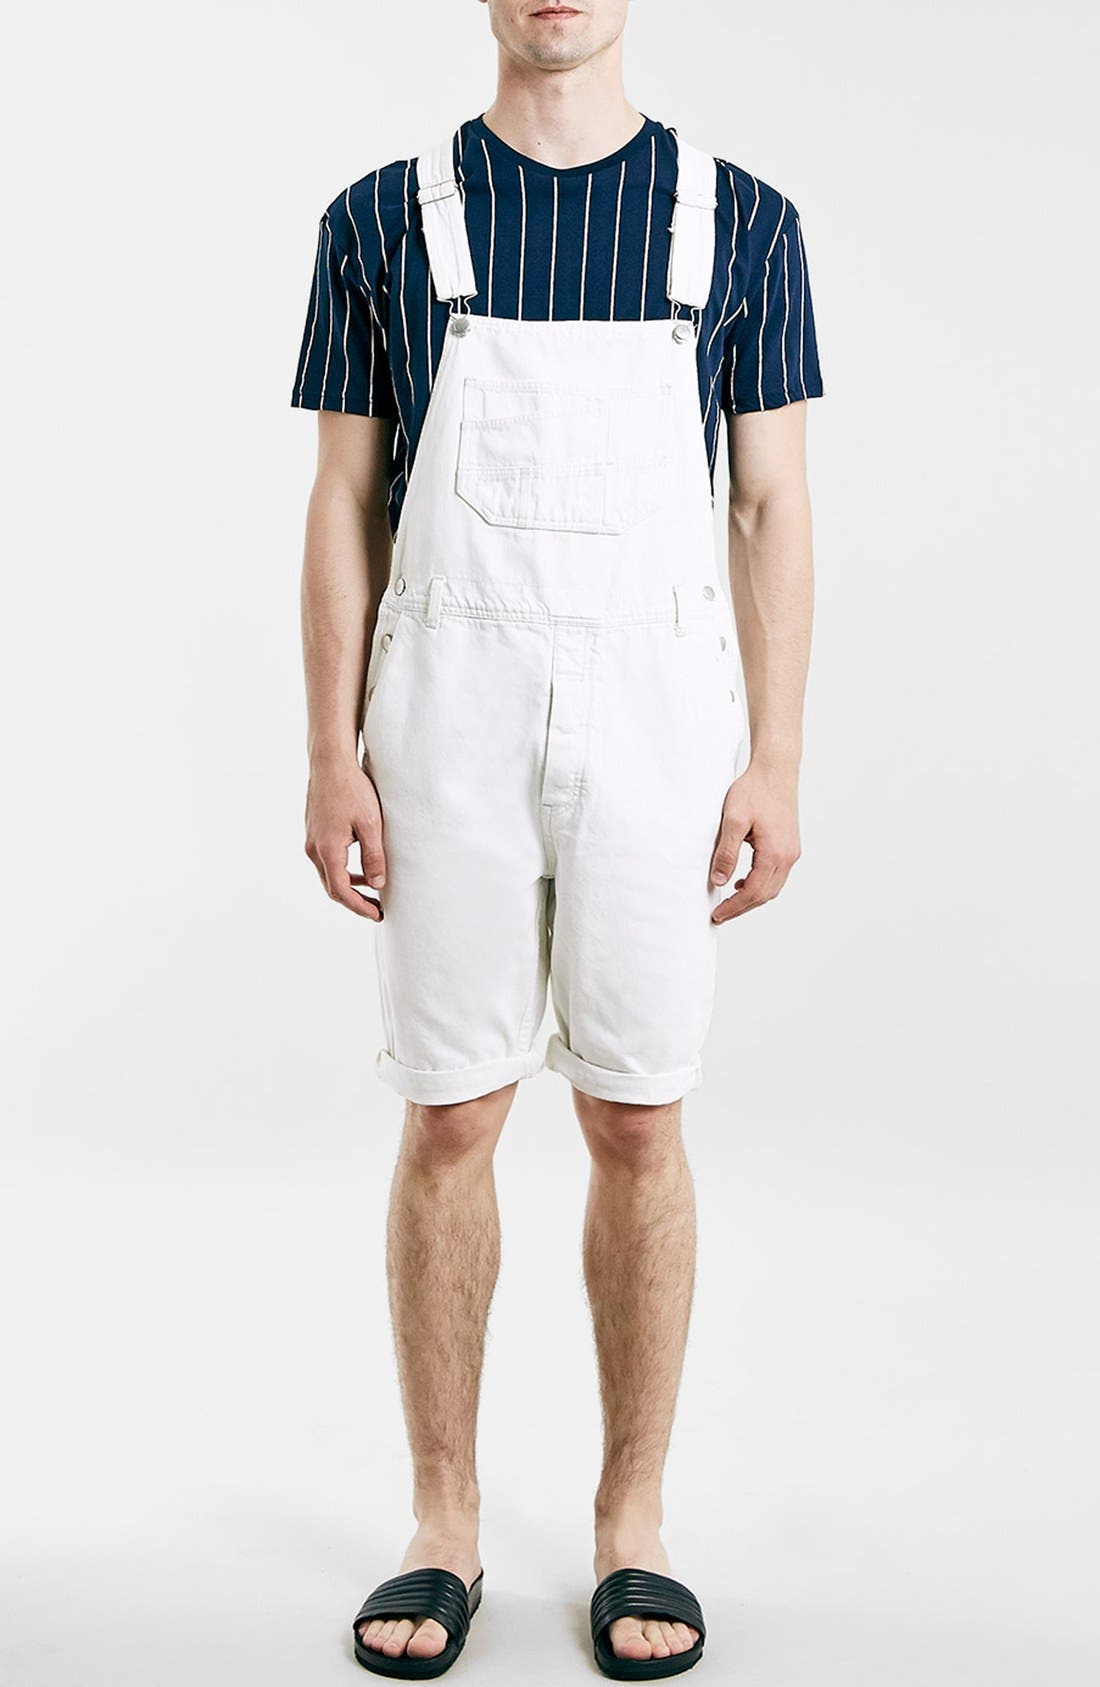 TOPMAN, Denim Overall Shorts, Alternate thumbnail 2, color, 900